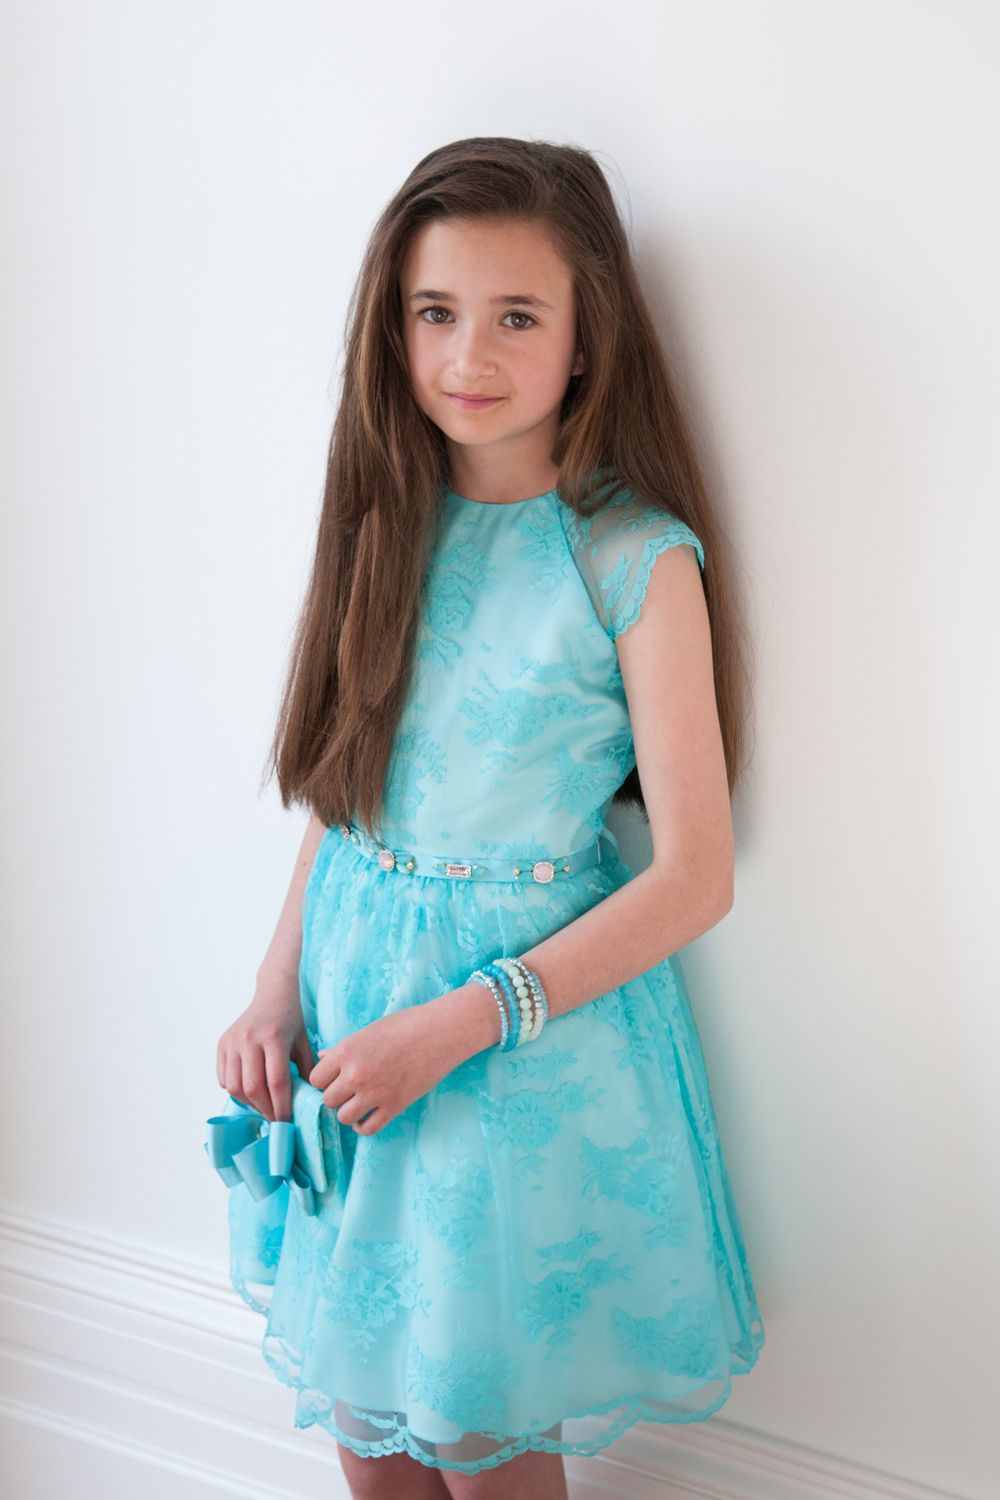 Turquoise Girls Dream Dress | Occasion wear dresses, Light turquoise ...